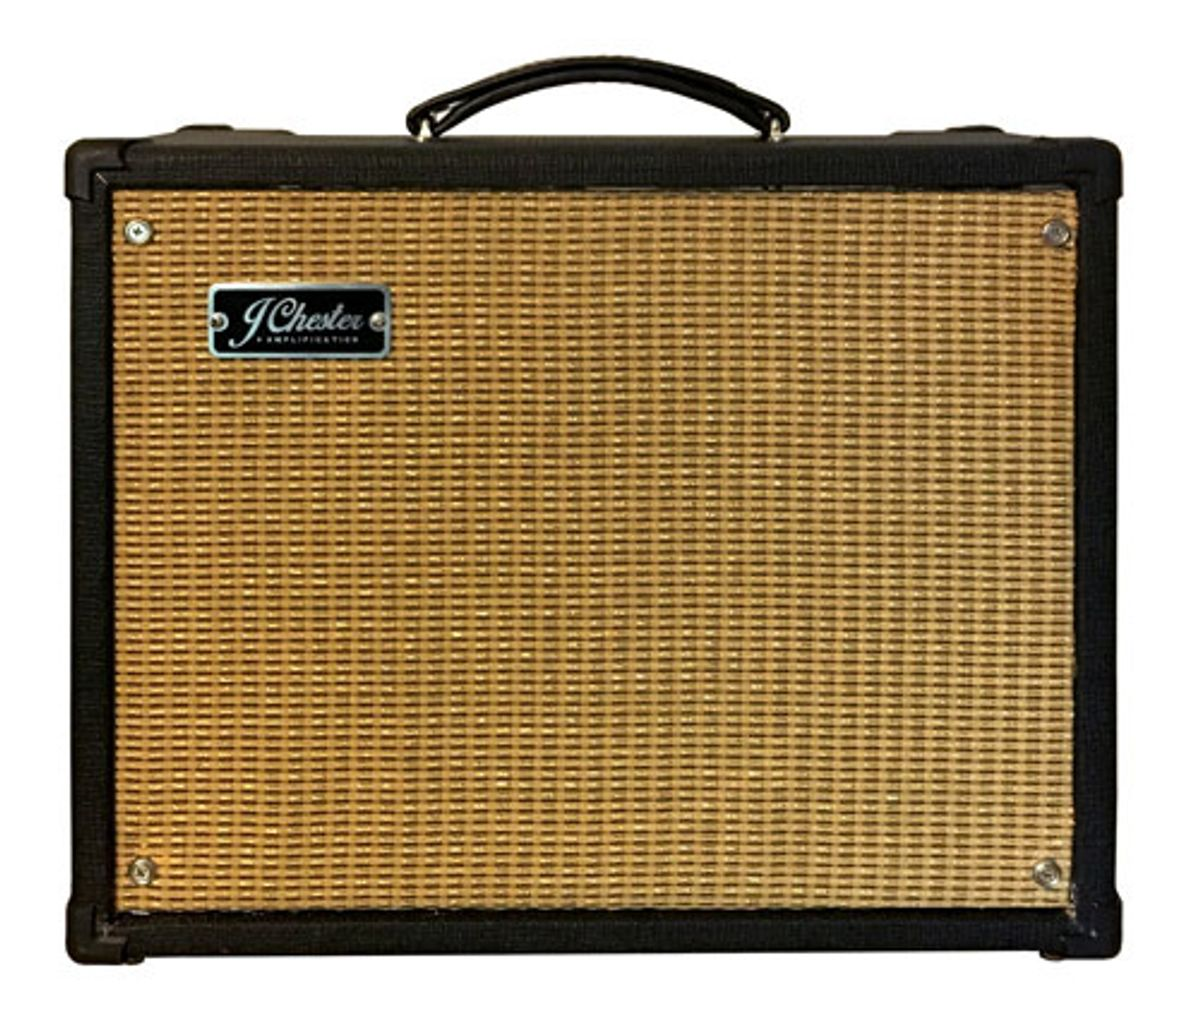 J. Chester Amplification Introduces the Brit Combo